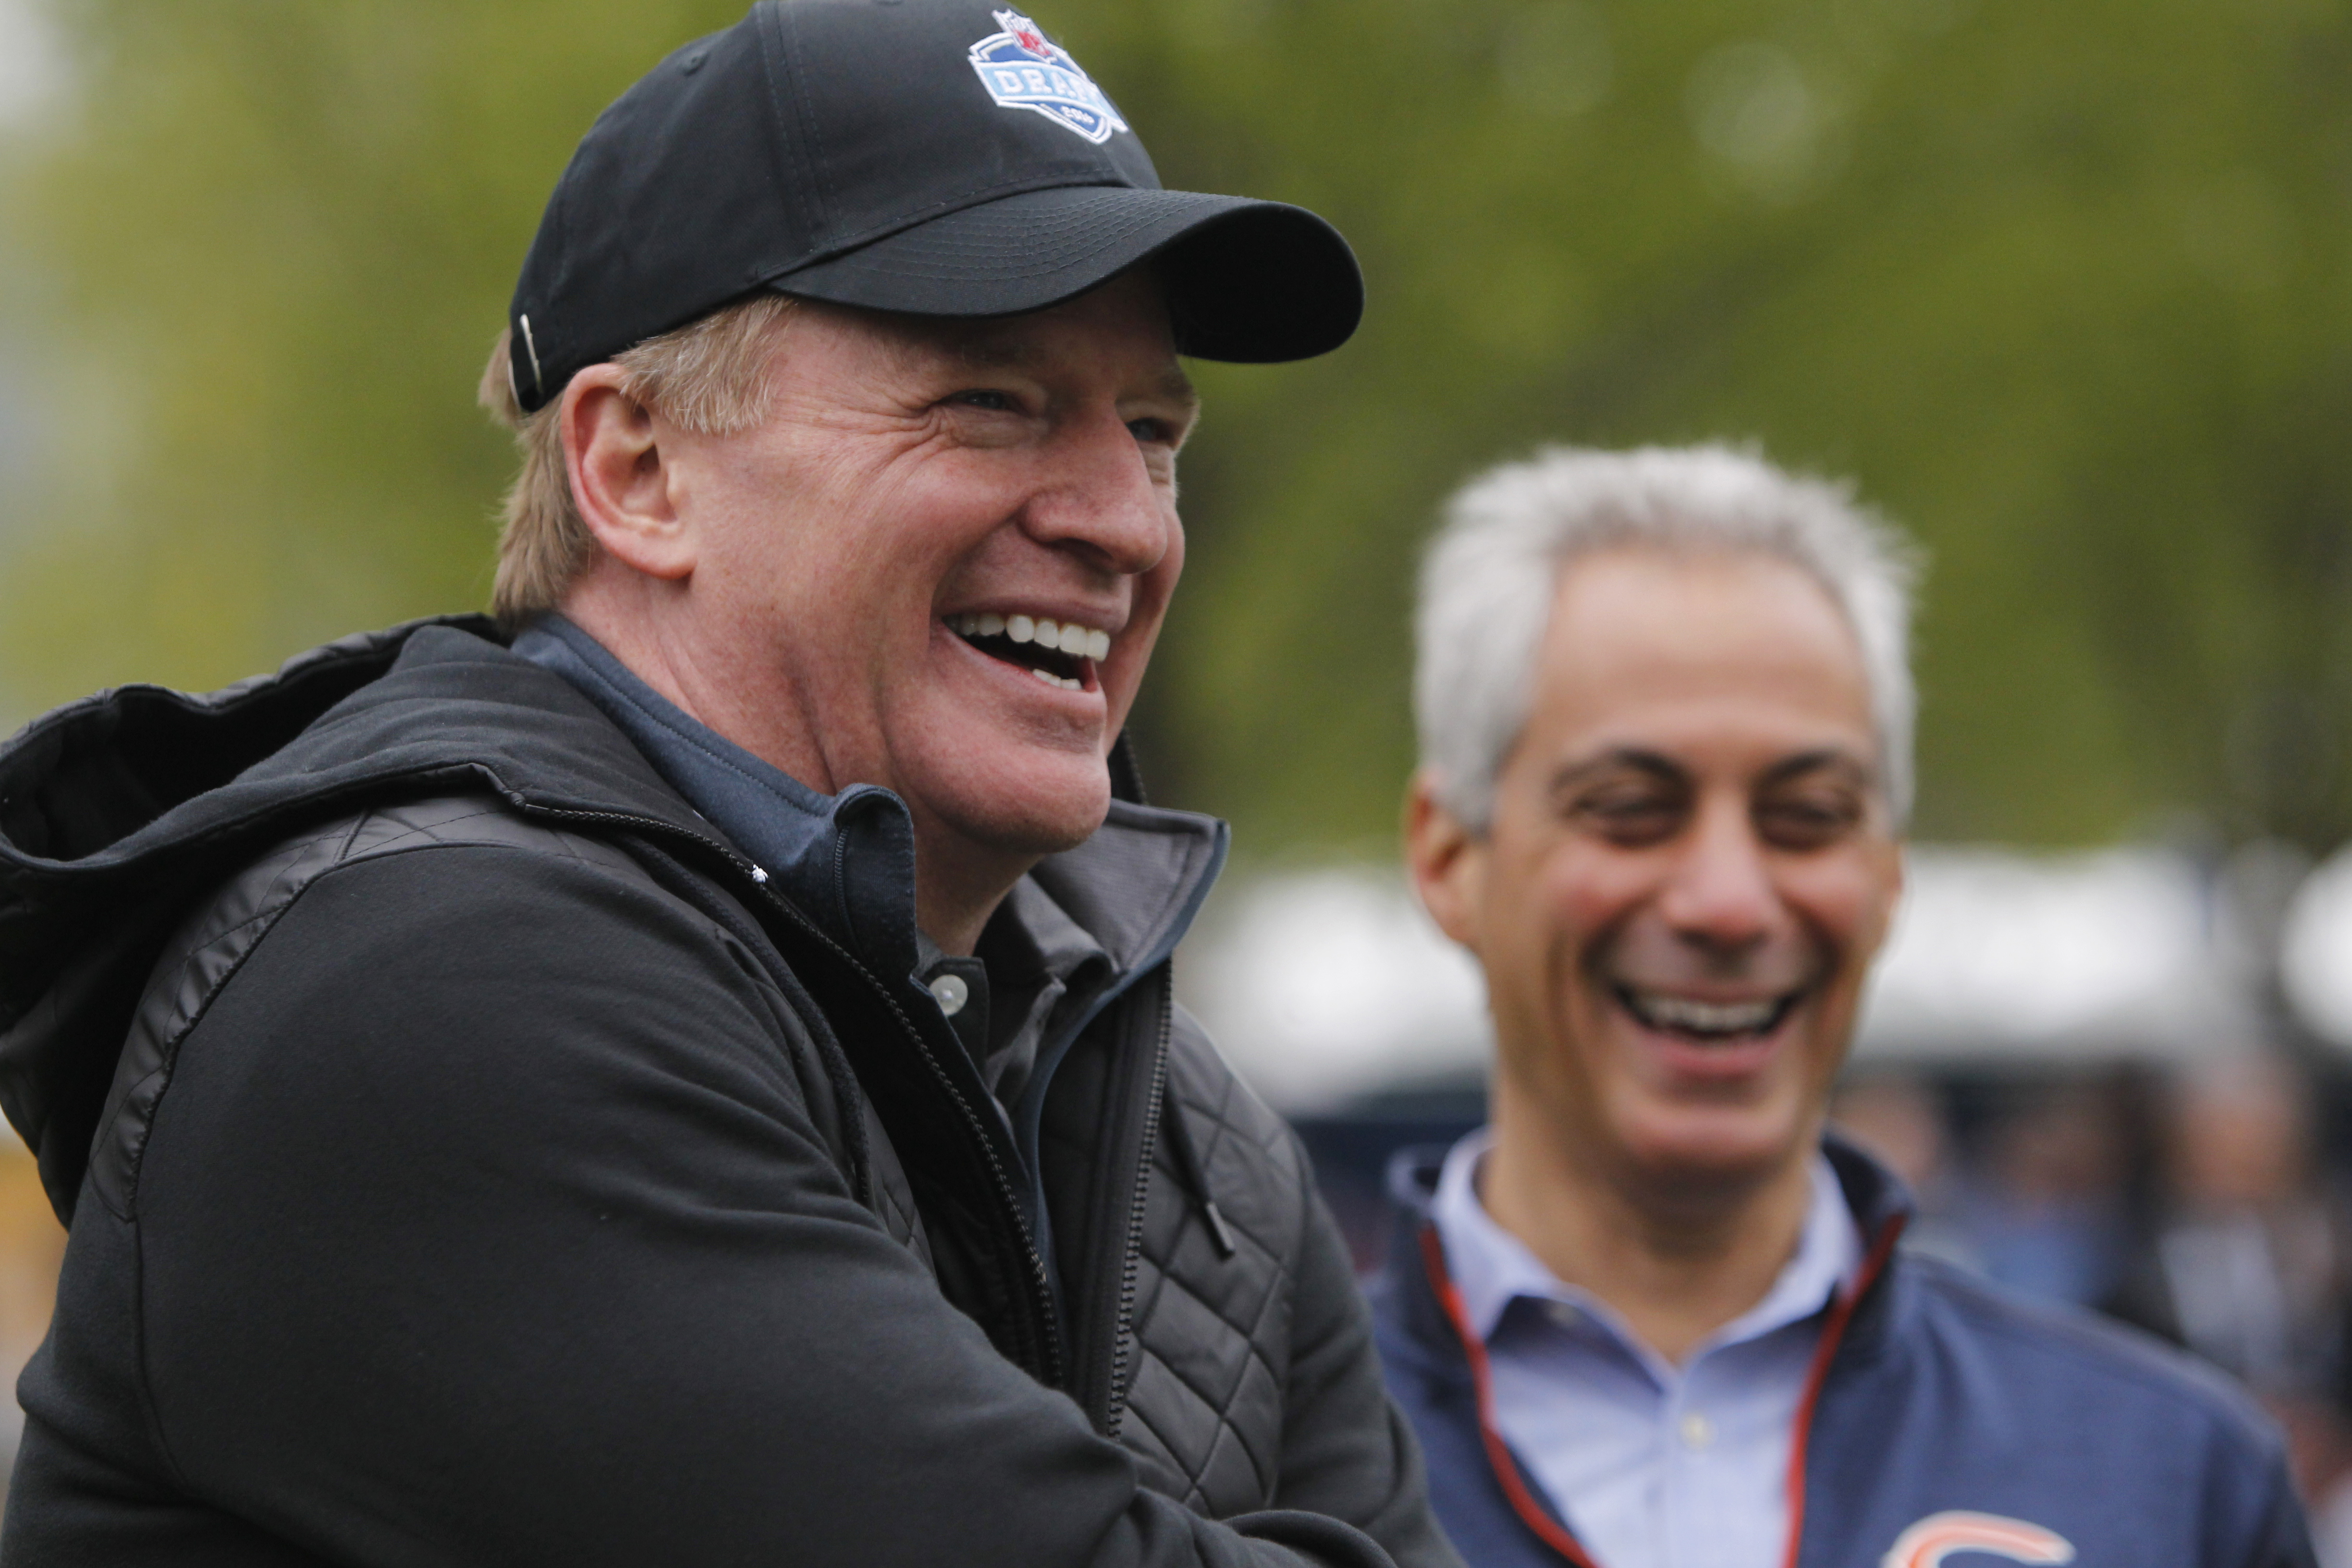 NFL Commissioner Roger Goodell, left,  laughs with Chicago Mayor Rahm Emanuel during an NFL Play 60 event at Grant Park, Wednesday, April 27, 2016, in Chicago before Thursday's first round of the NFL football draft. (AP Photo/Kiichiro Sato)